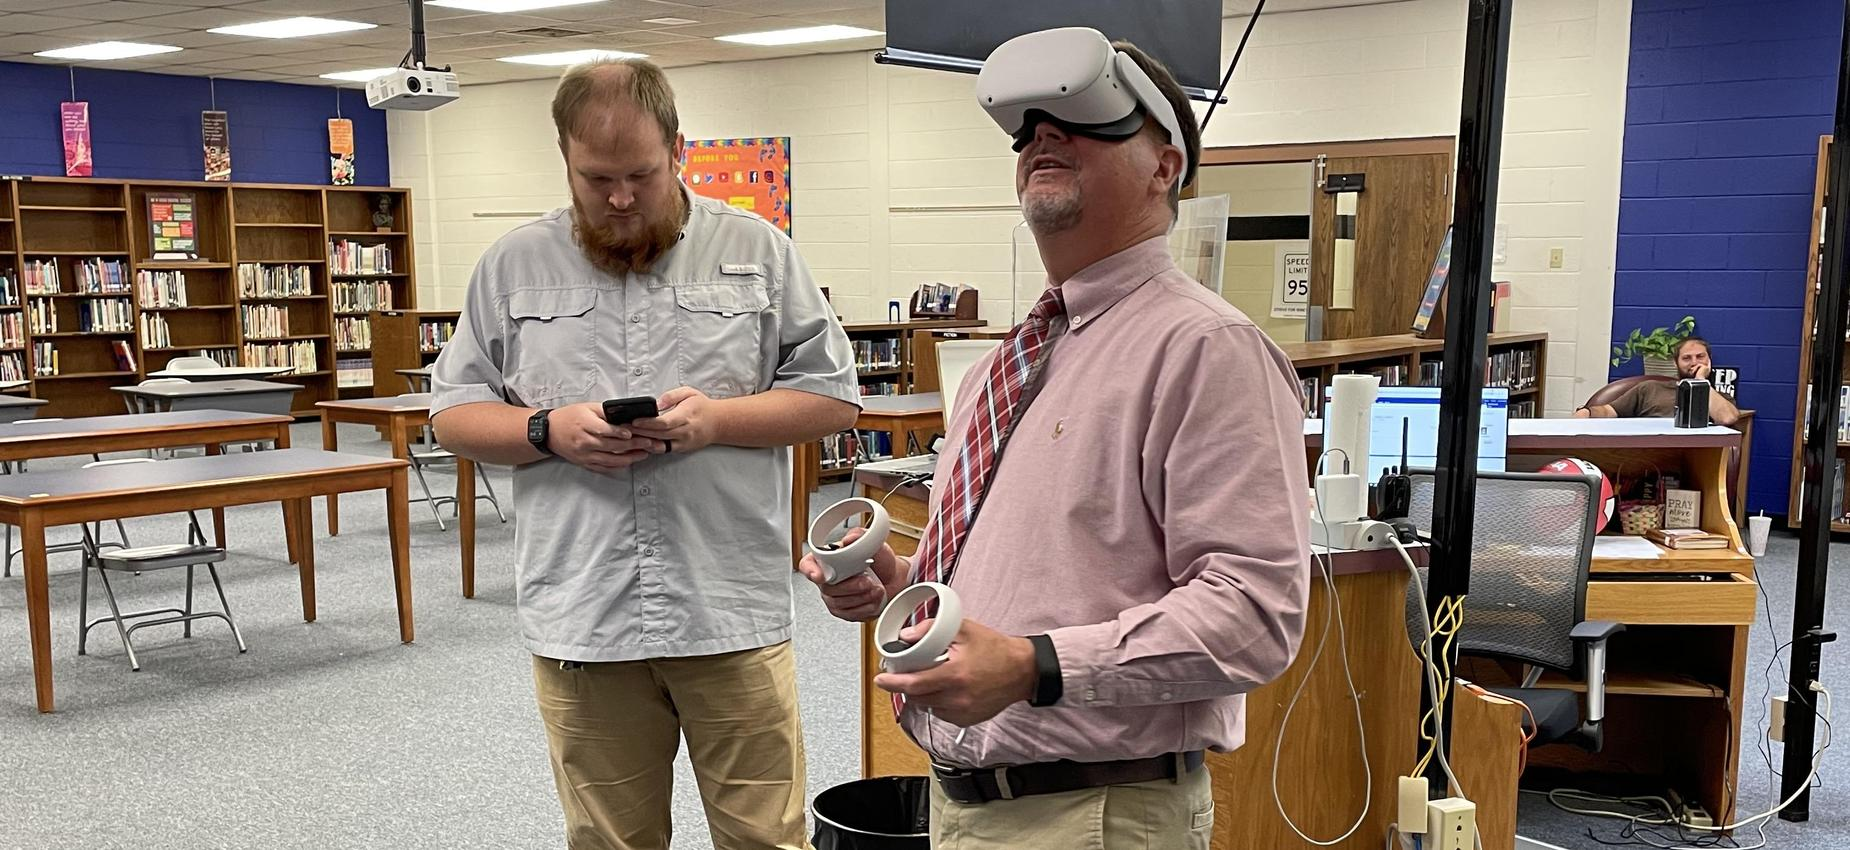 Two men use a virtual reality headset in a library.